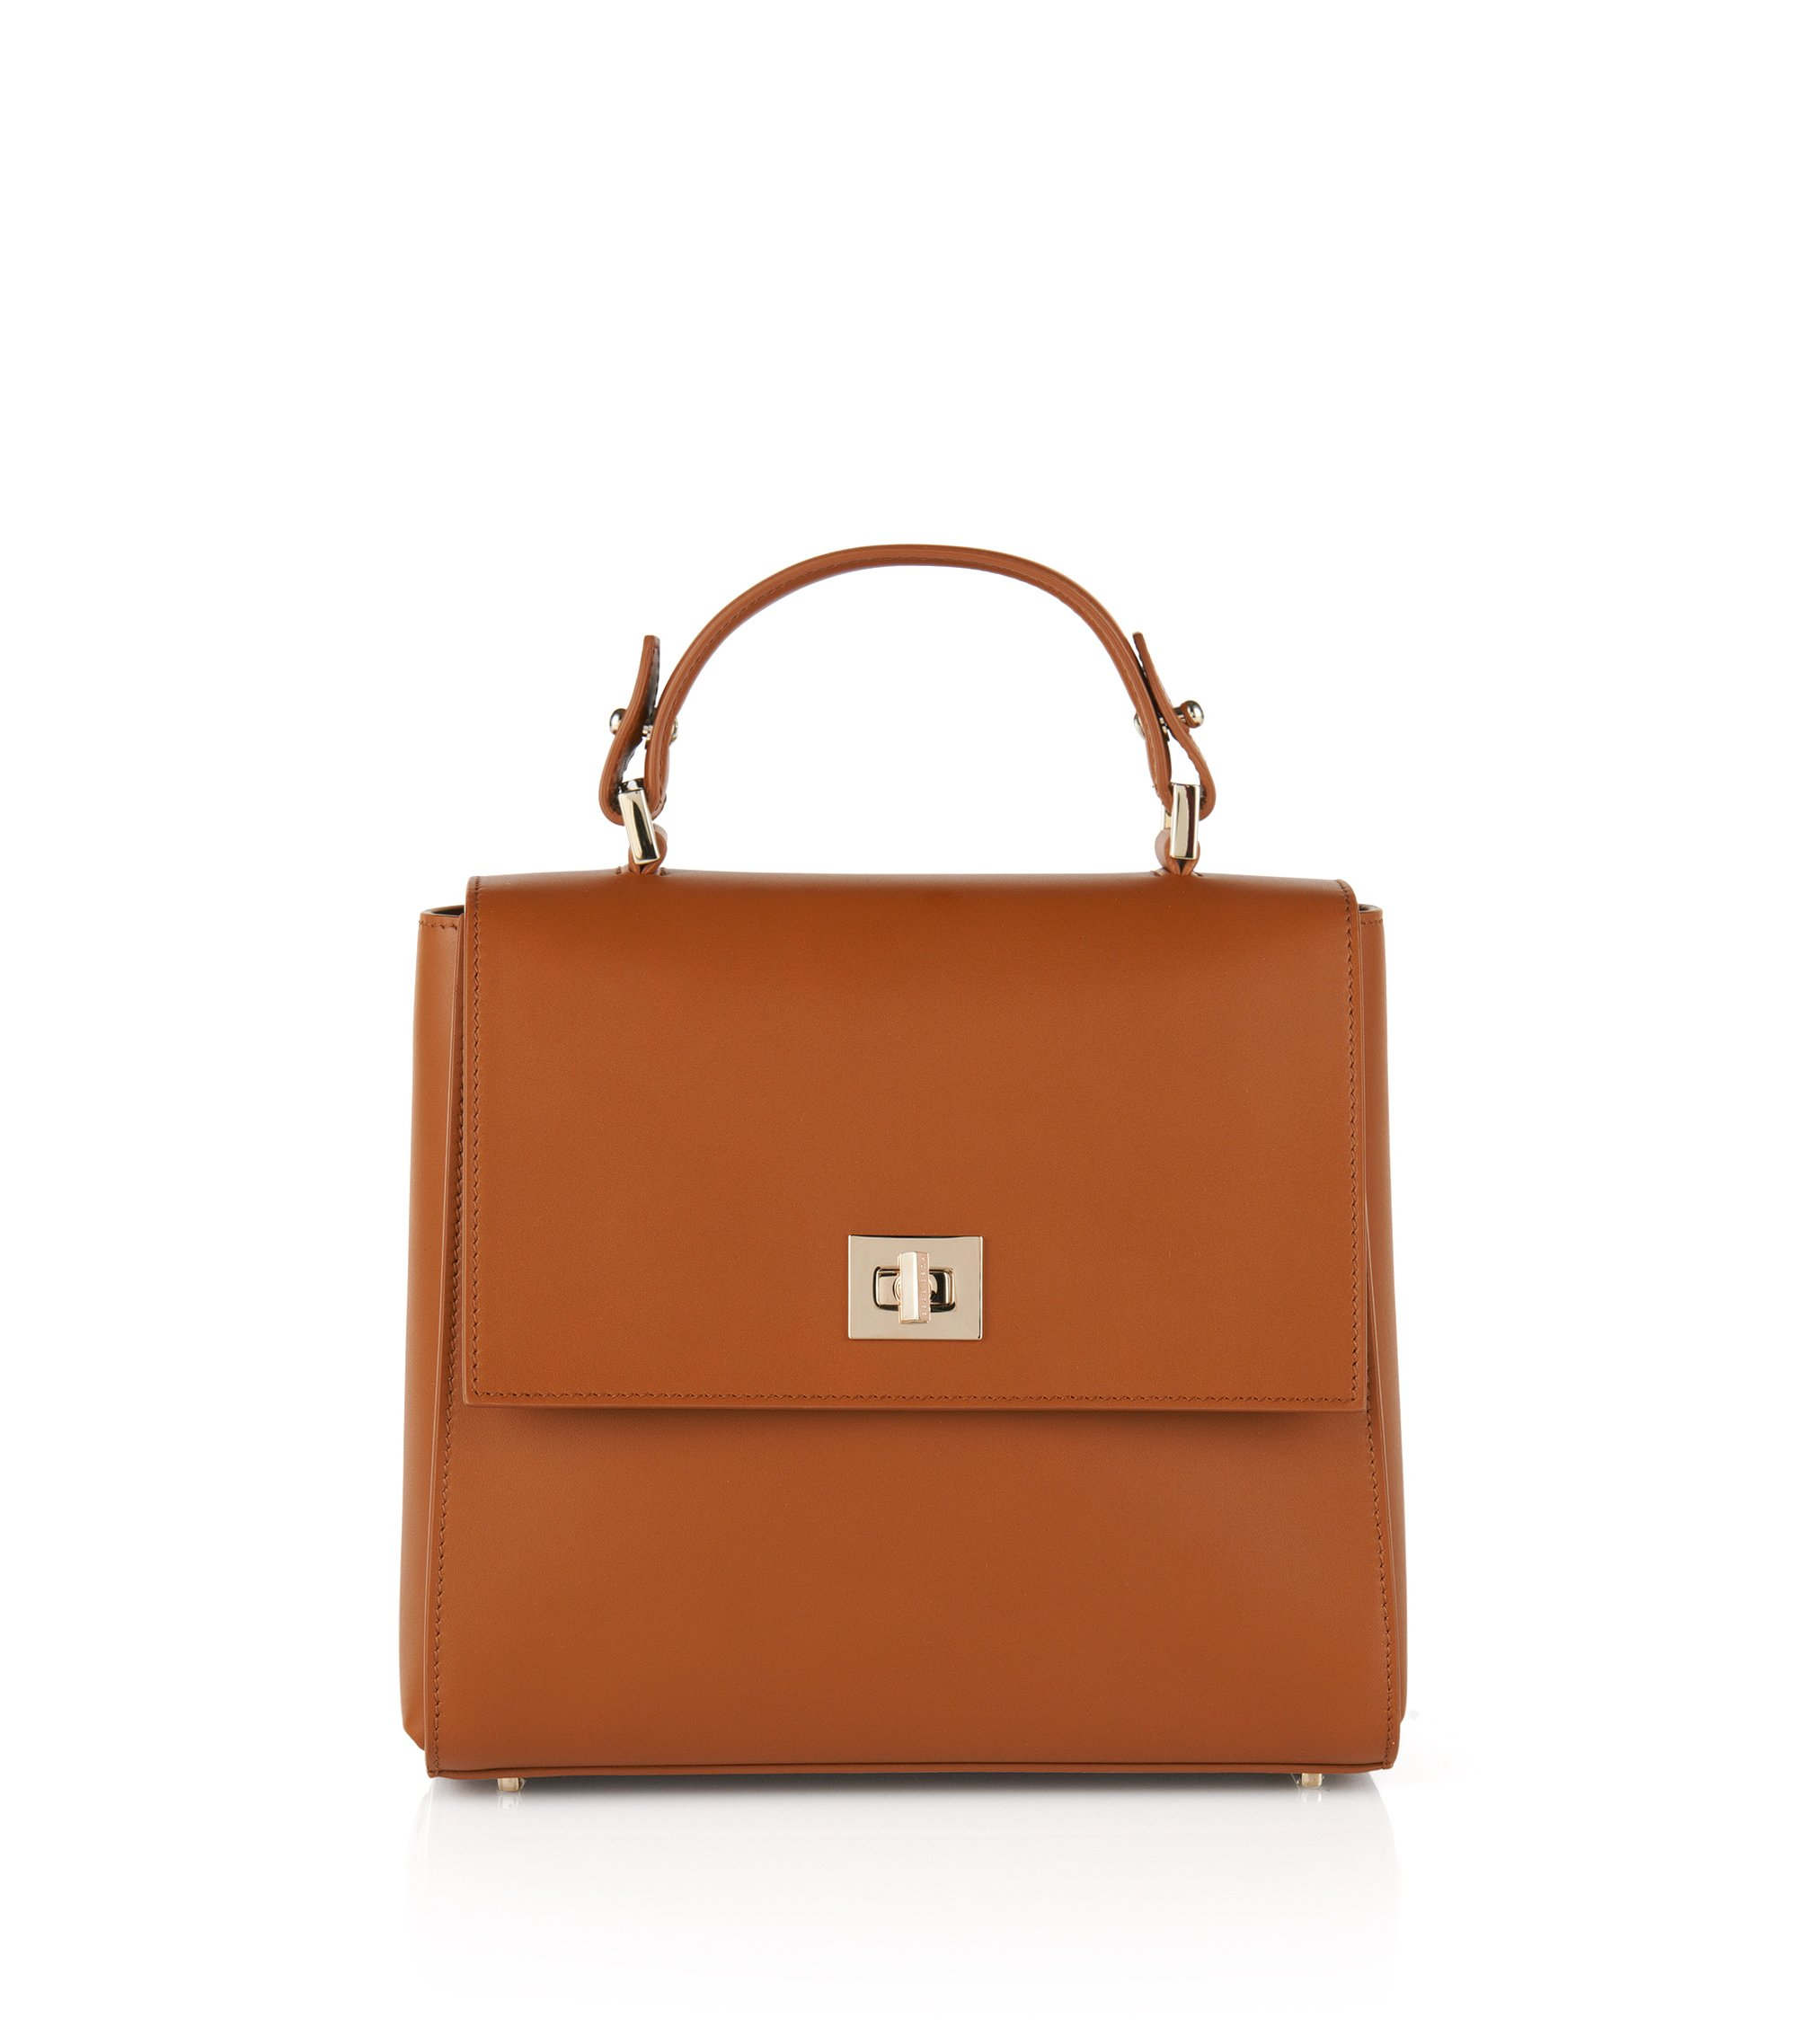 Small BOSS Bespoke handbag in leather, Brown